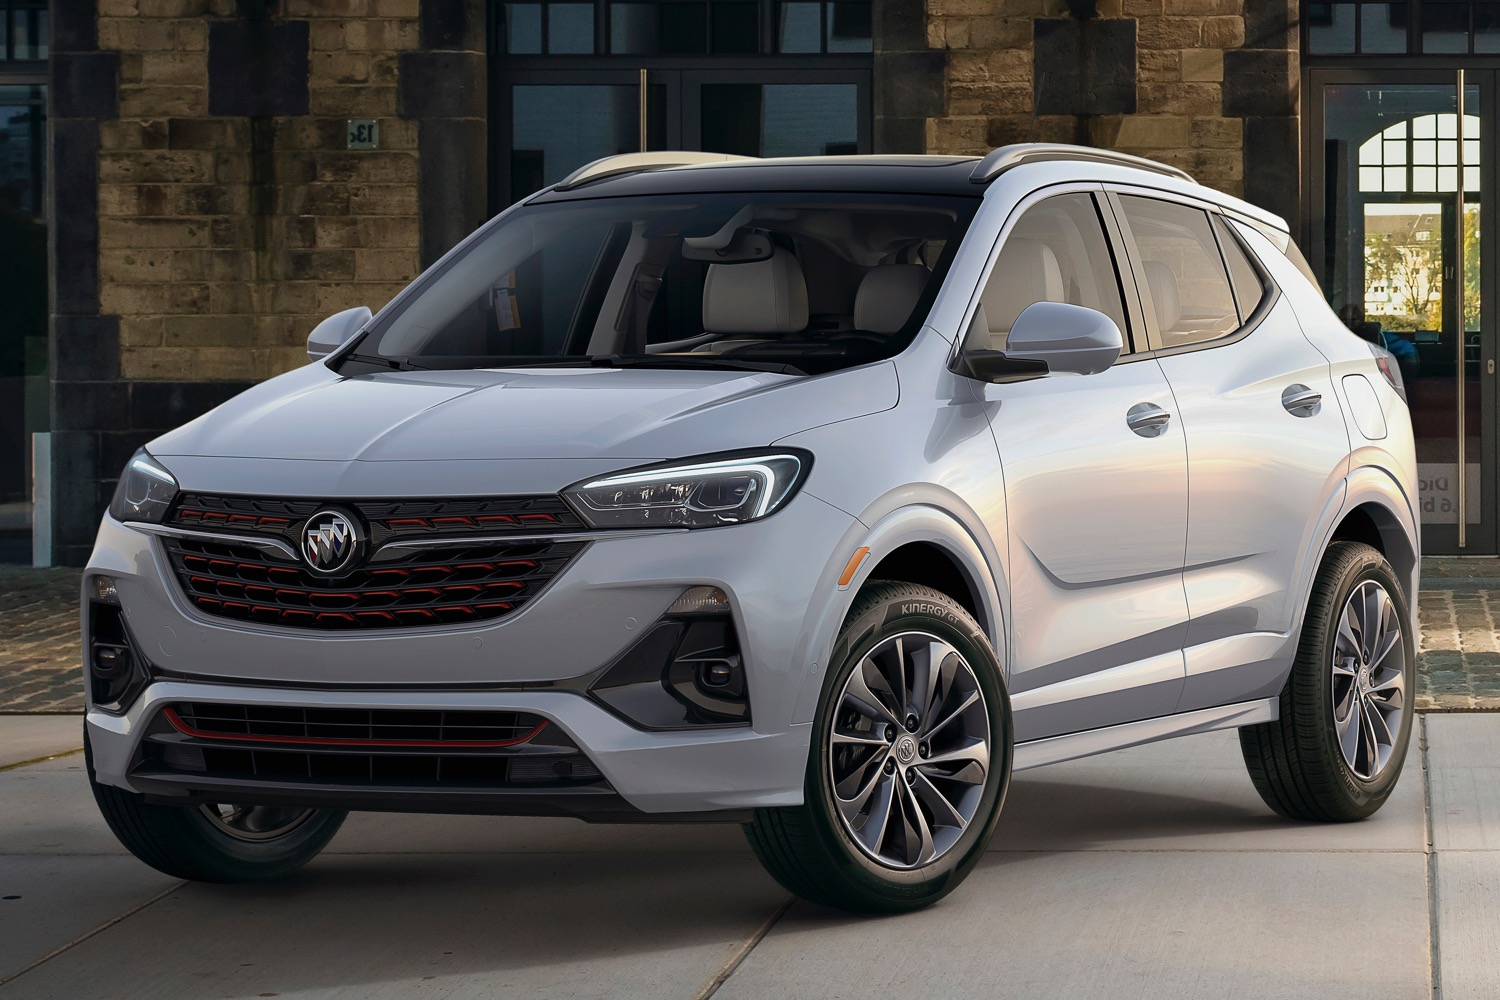 Buick Encore Gx: Check Out The Four Sets Of Factory Wheels New 2022 Buick Encore Gx Specs, Accessories, Awd